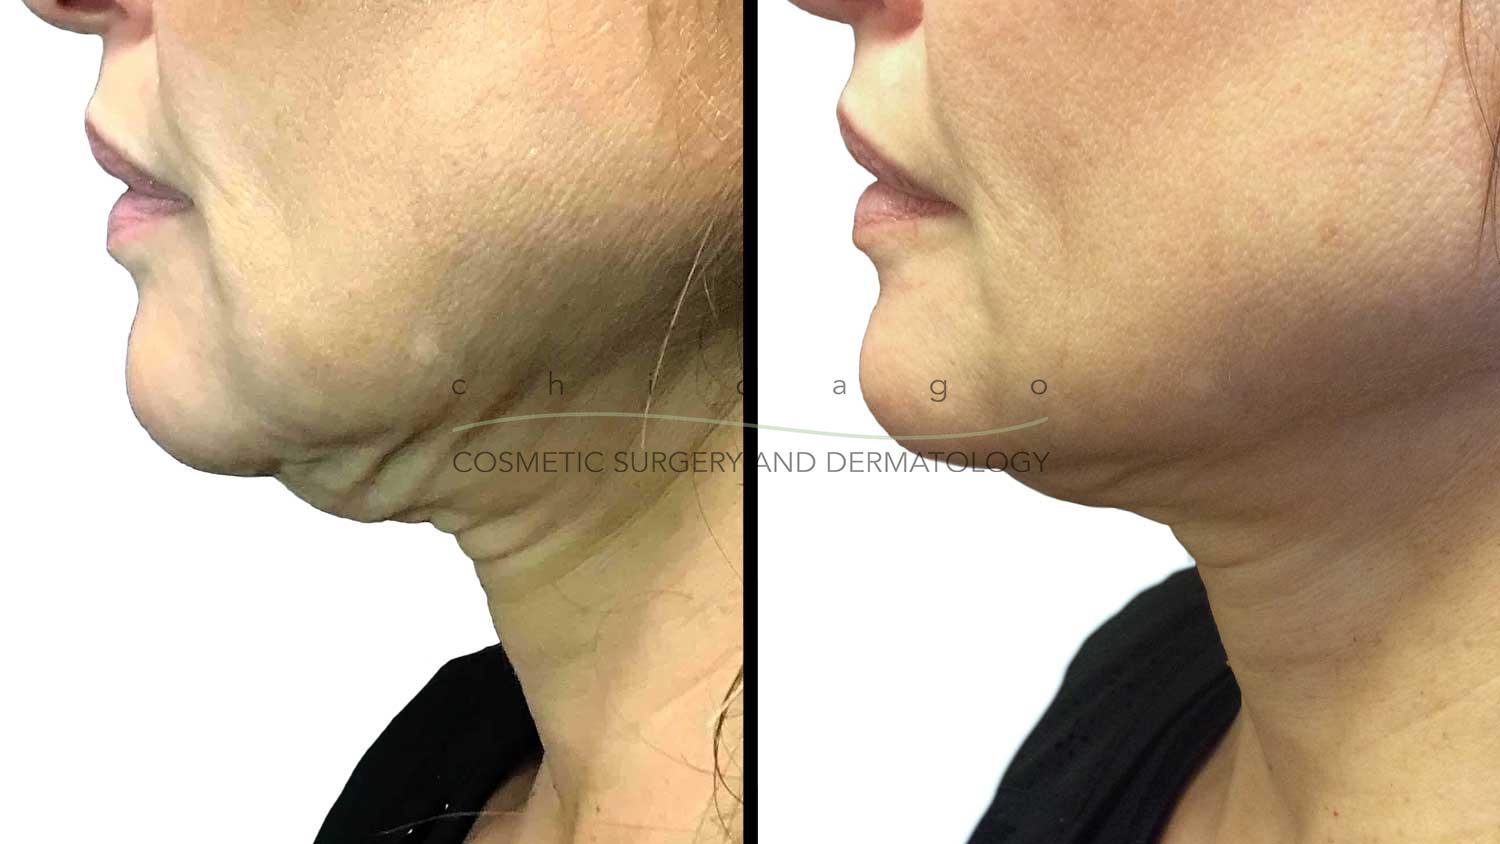 Thermage FLX for neck skin tightening in Chicago